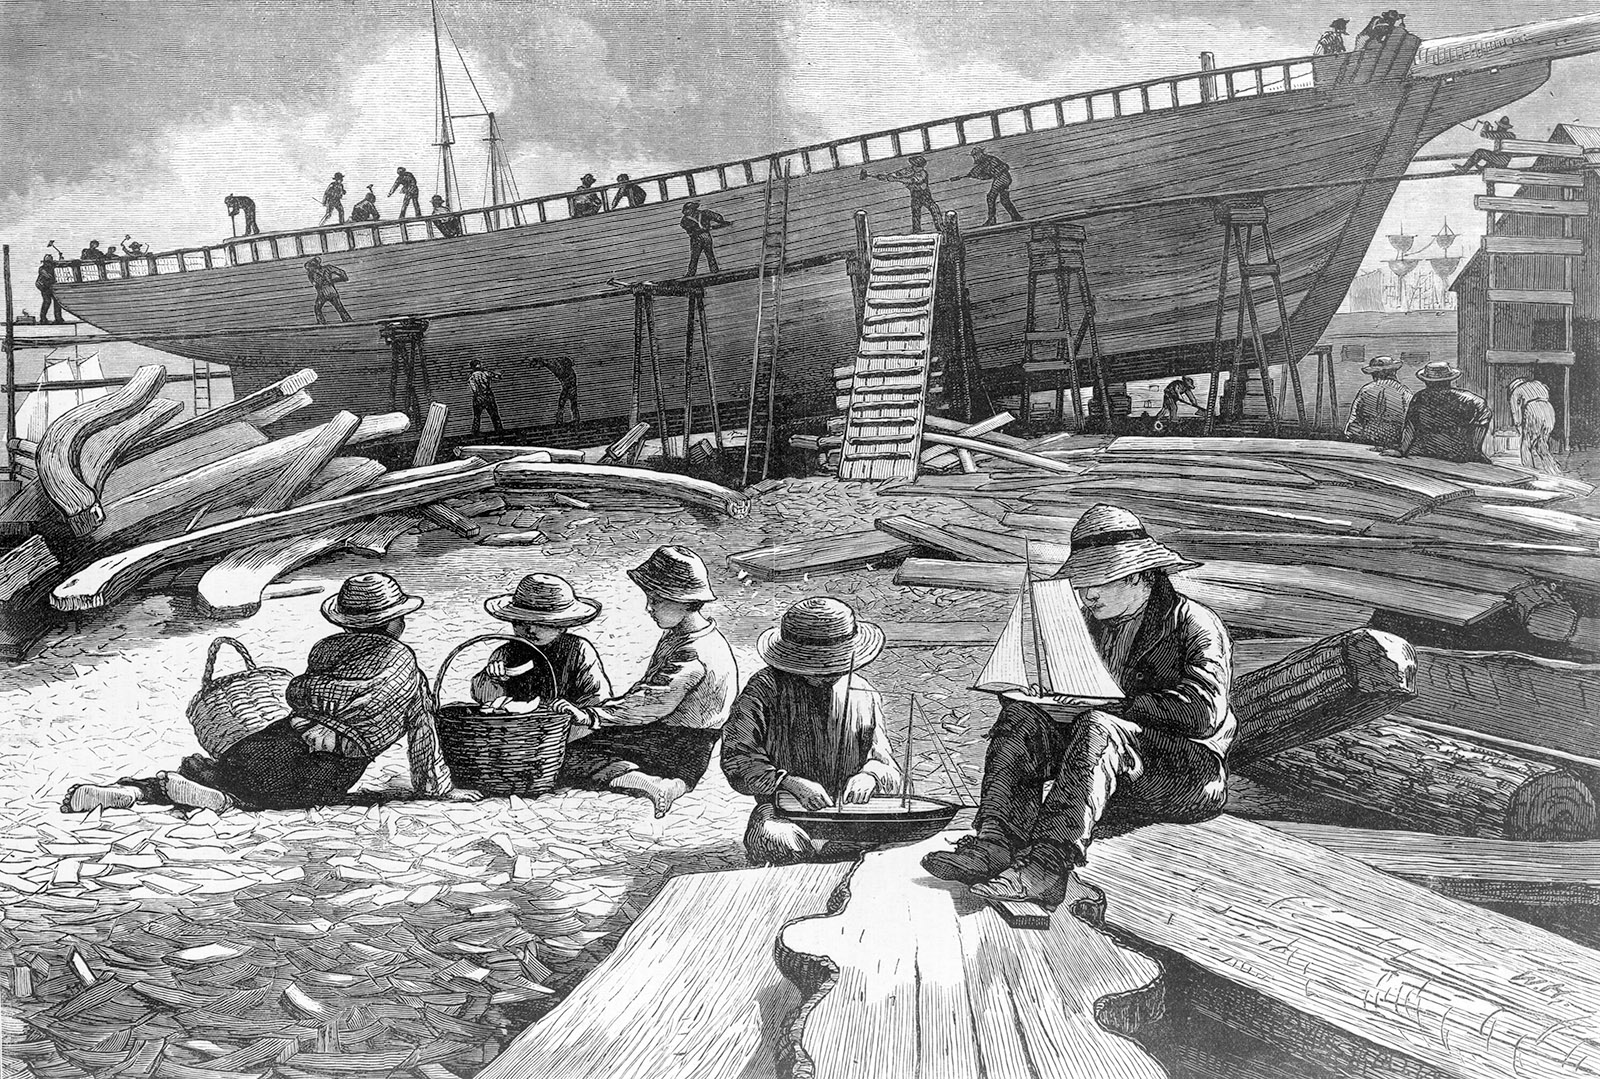 Shipbuilding, etching by Winslow Homer